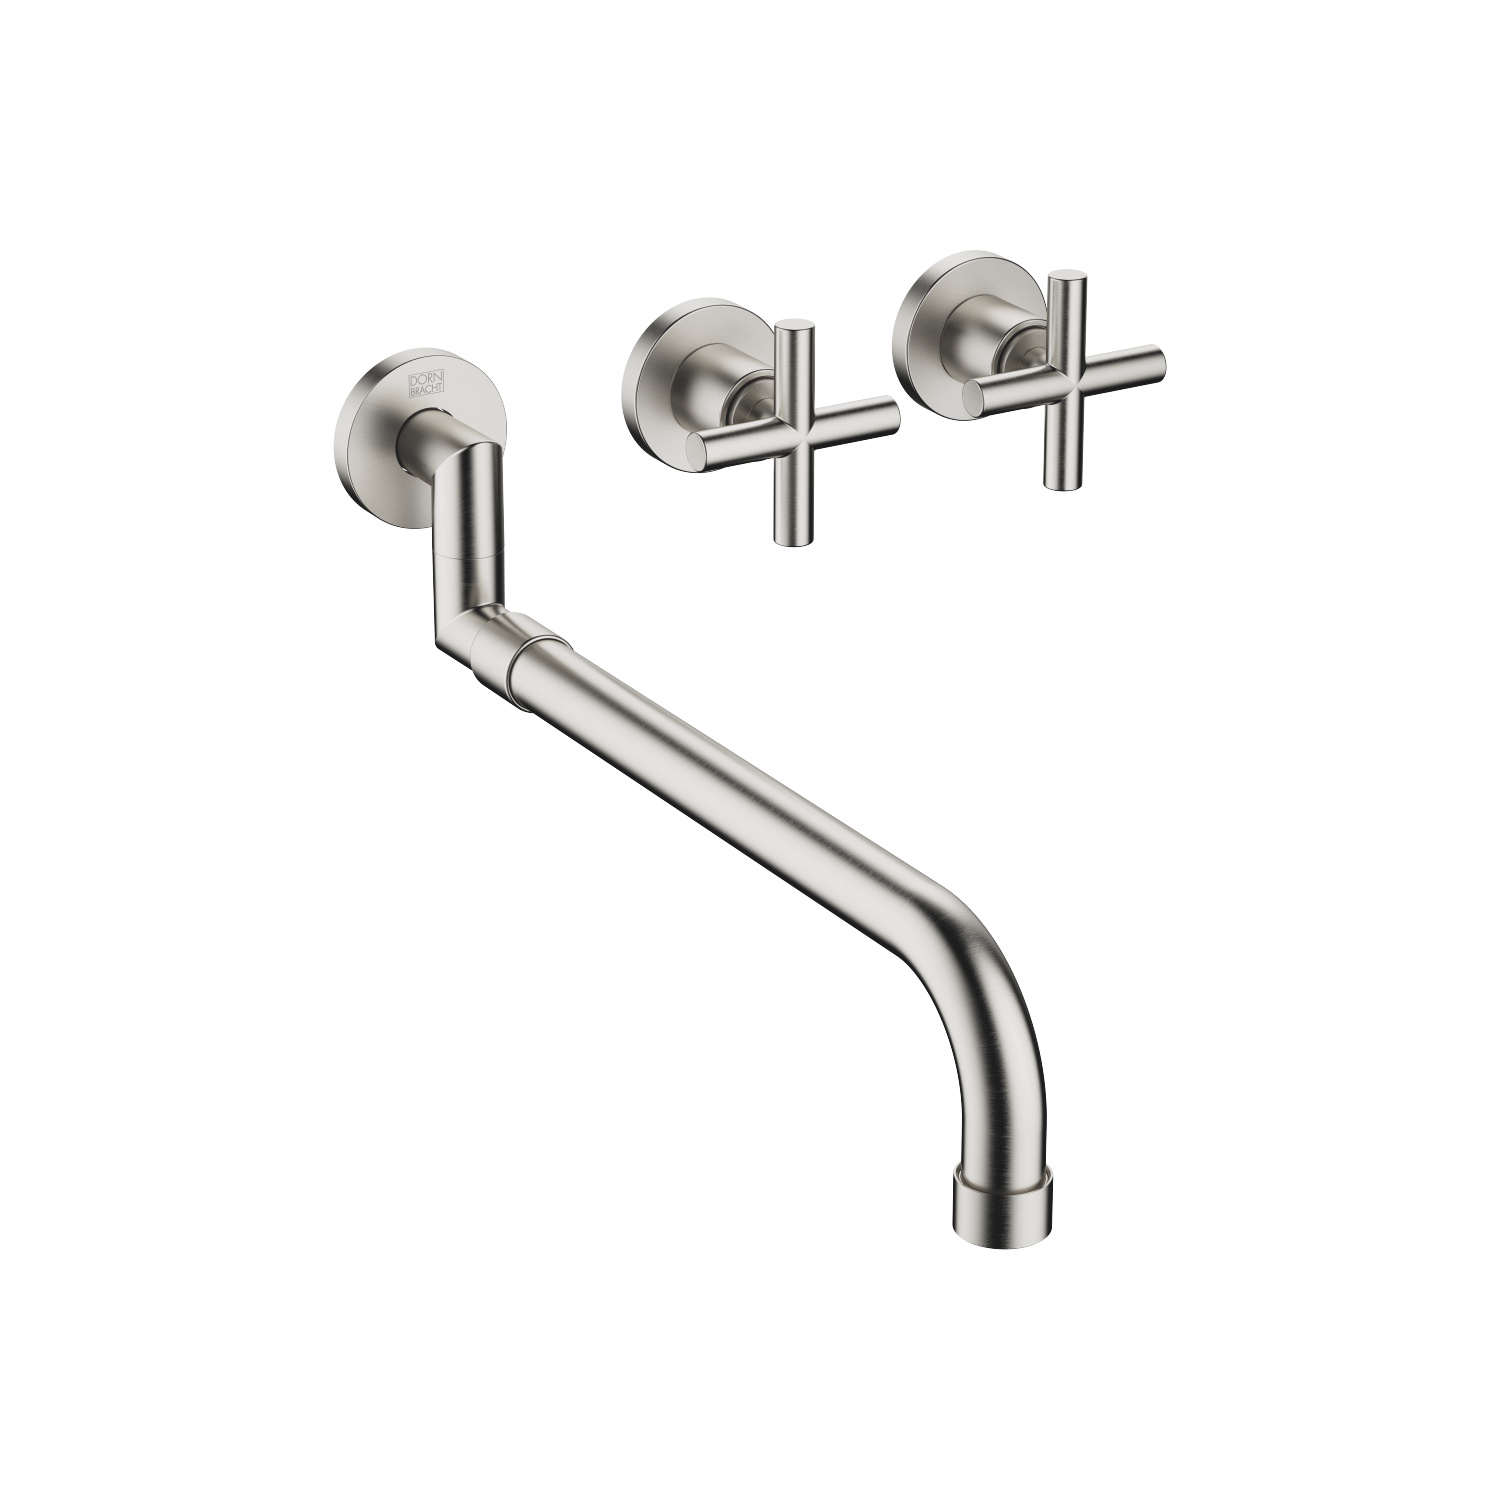 Wall-mounted sink mixer with extending spout - platinum matt